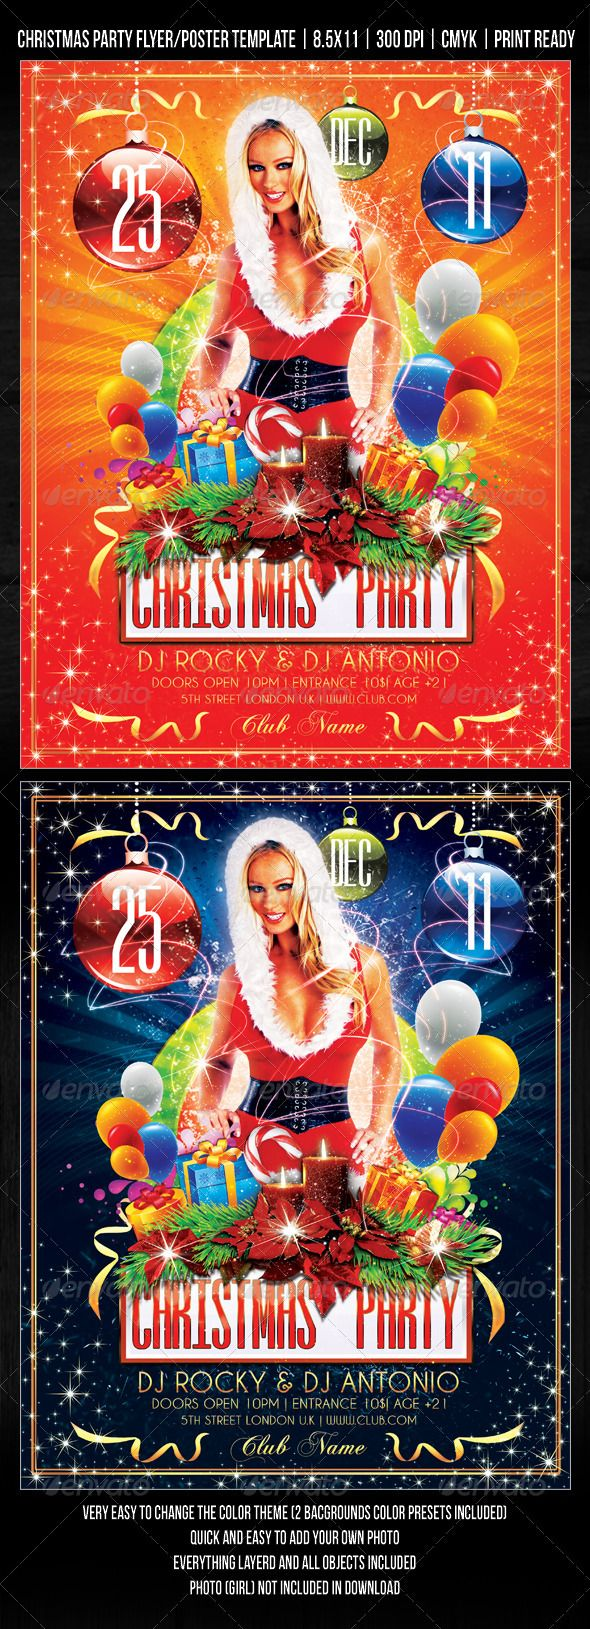 Quick poster design - Christmas Party Concert Flyer Poster Design